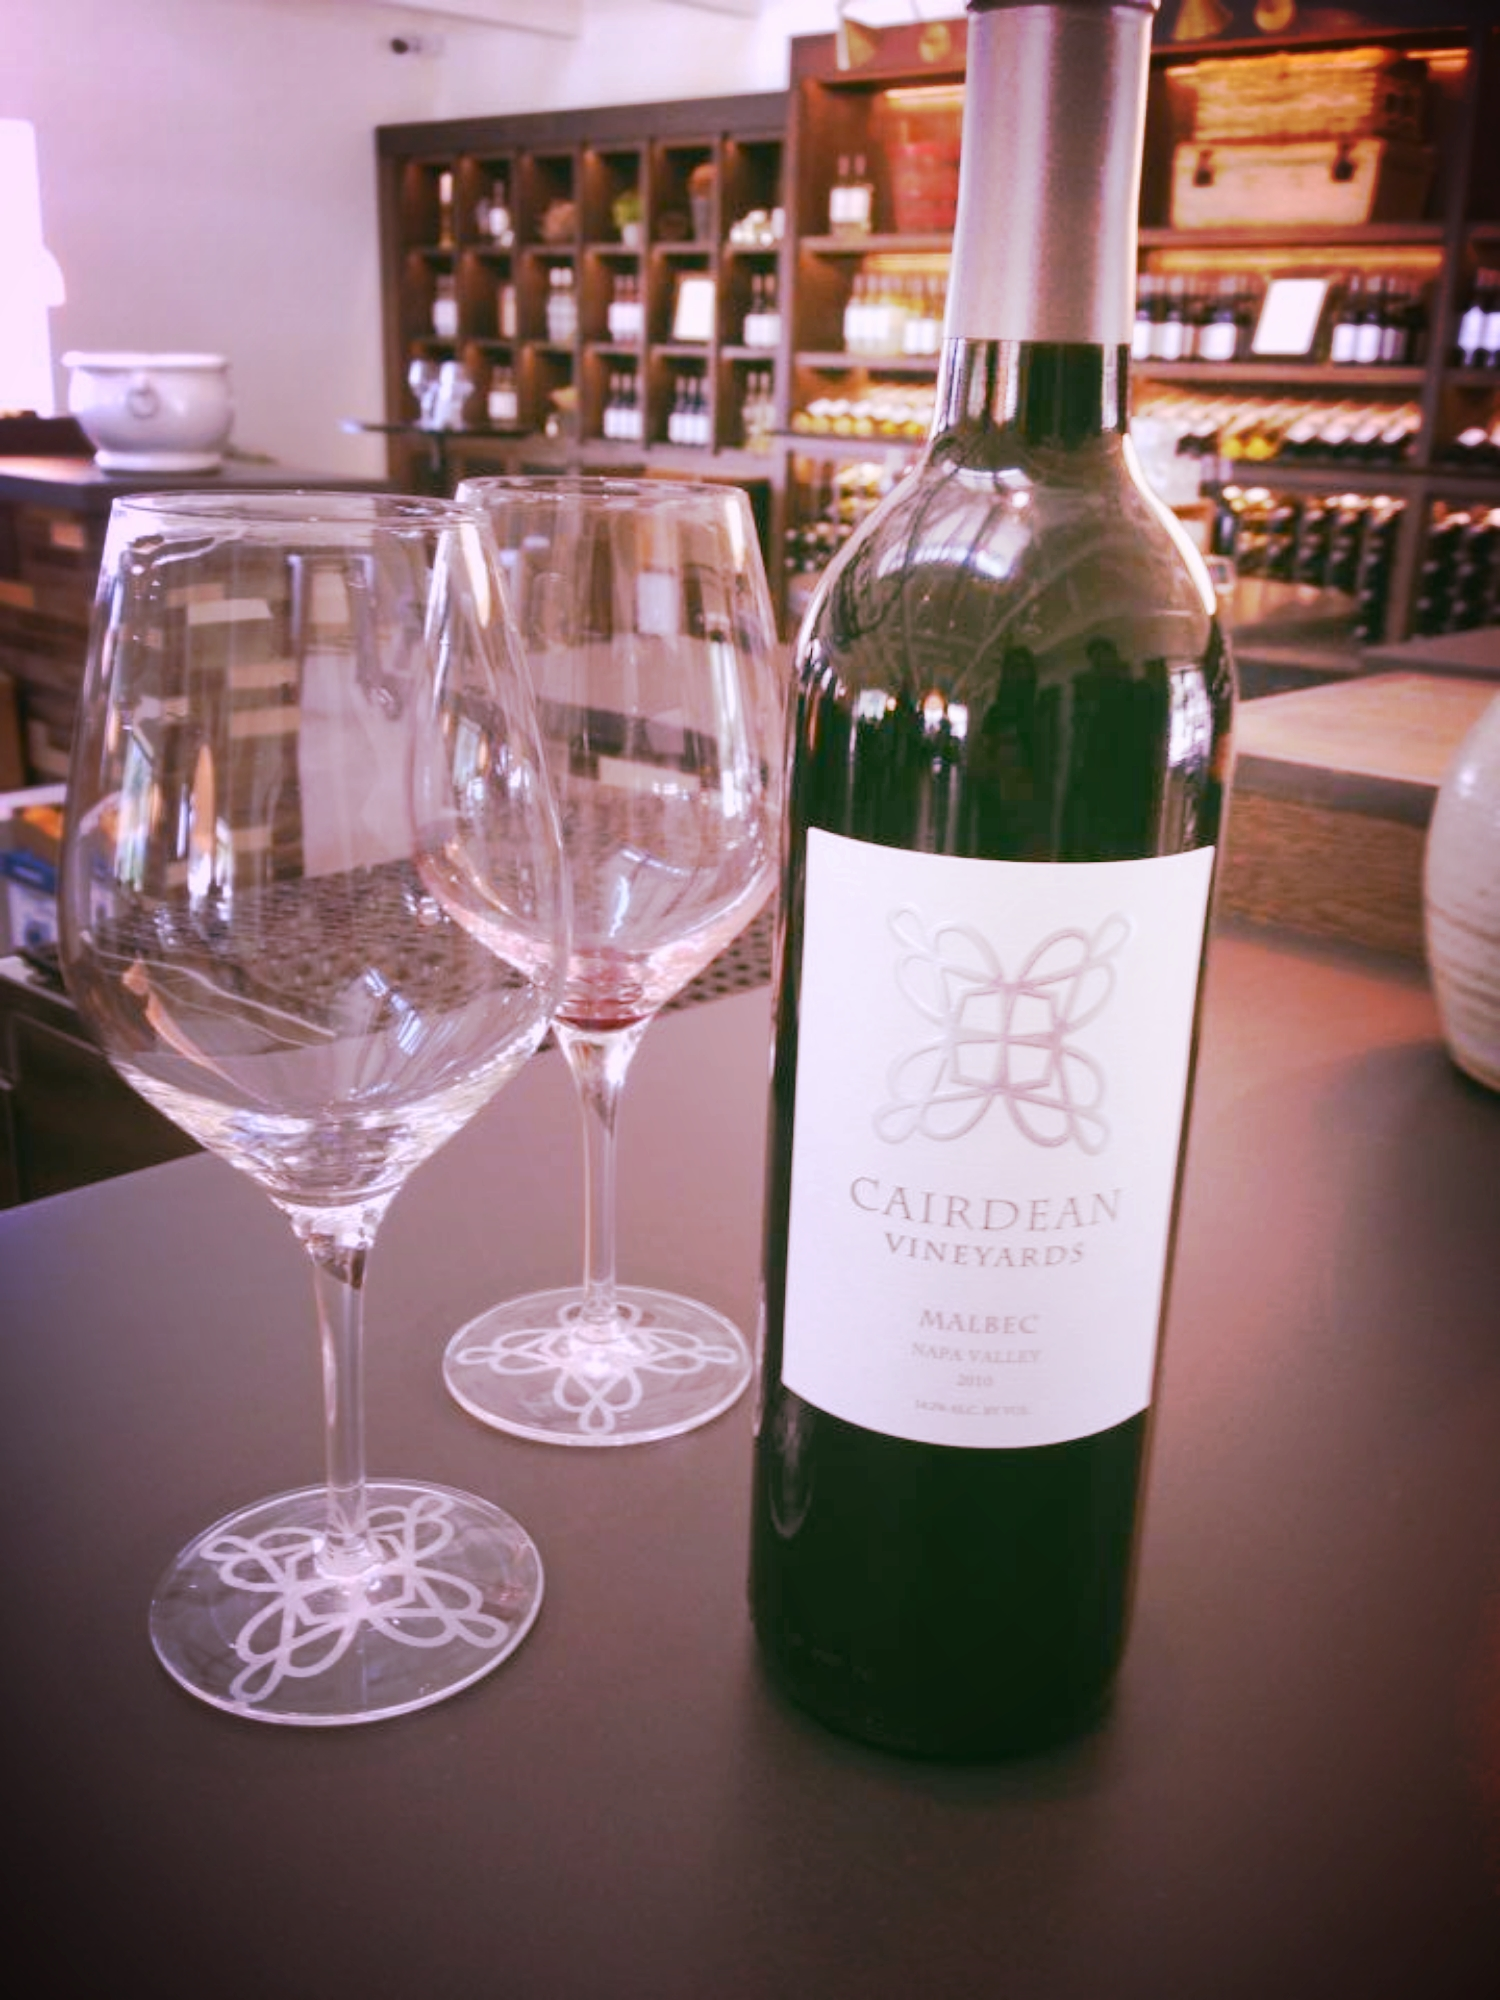 My favorite varietal is the Malbec, which was unbelievably scarce in Napa Valley when we visited. We were referred to two cellars that offered it and ended up at Cairdean Vineyards. It was a lovely find.